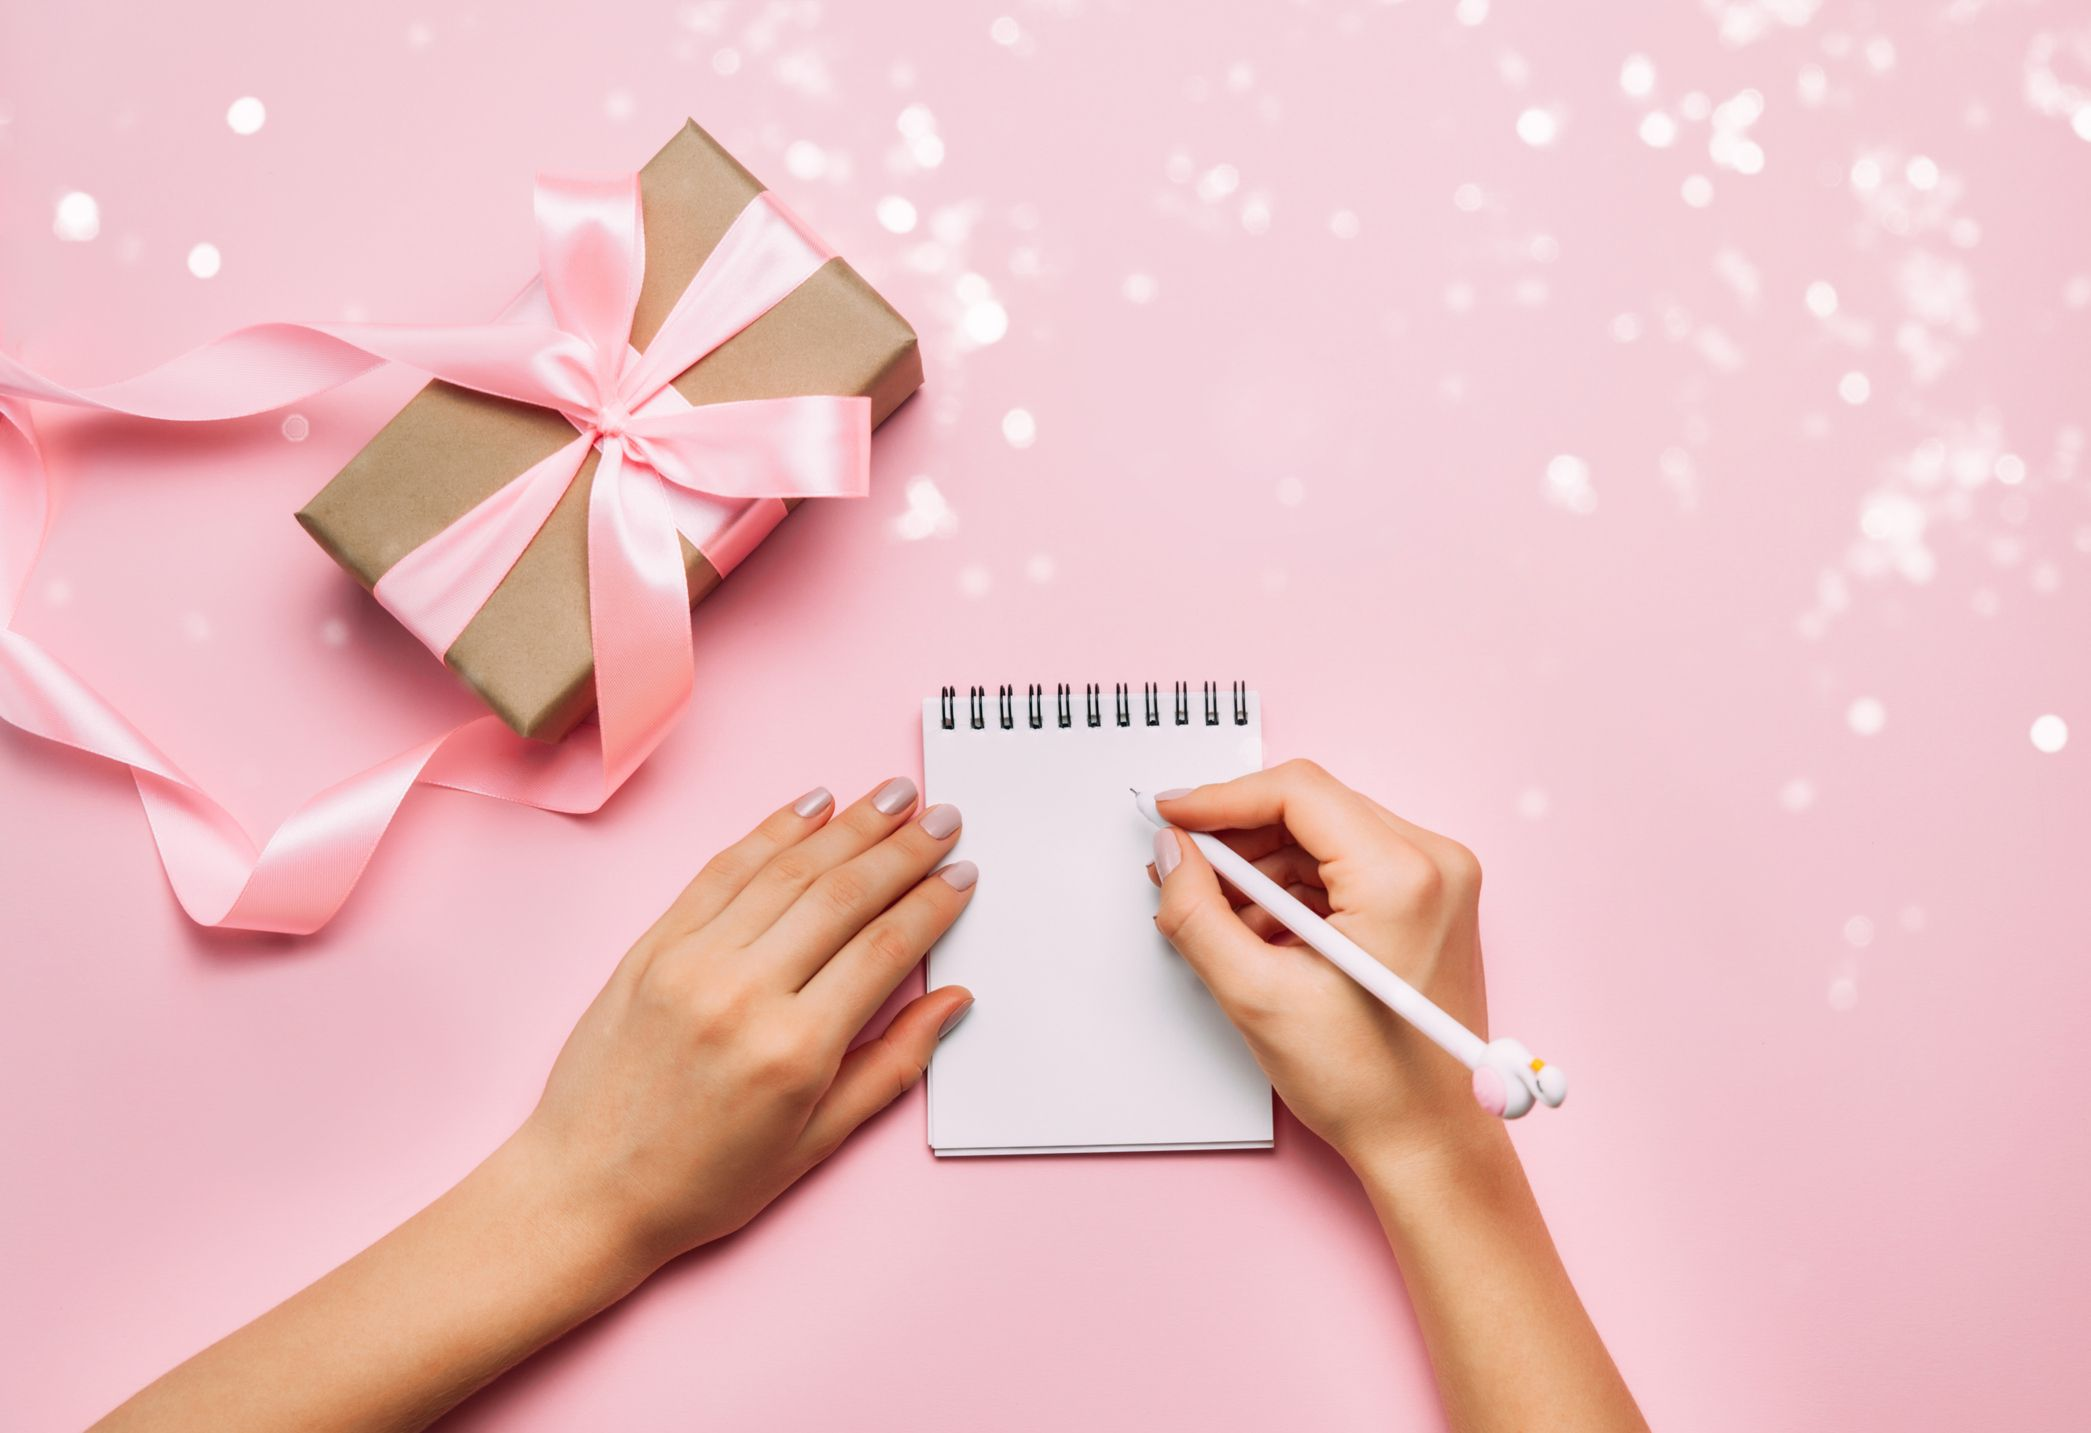 Hand writing in notebook with party gift